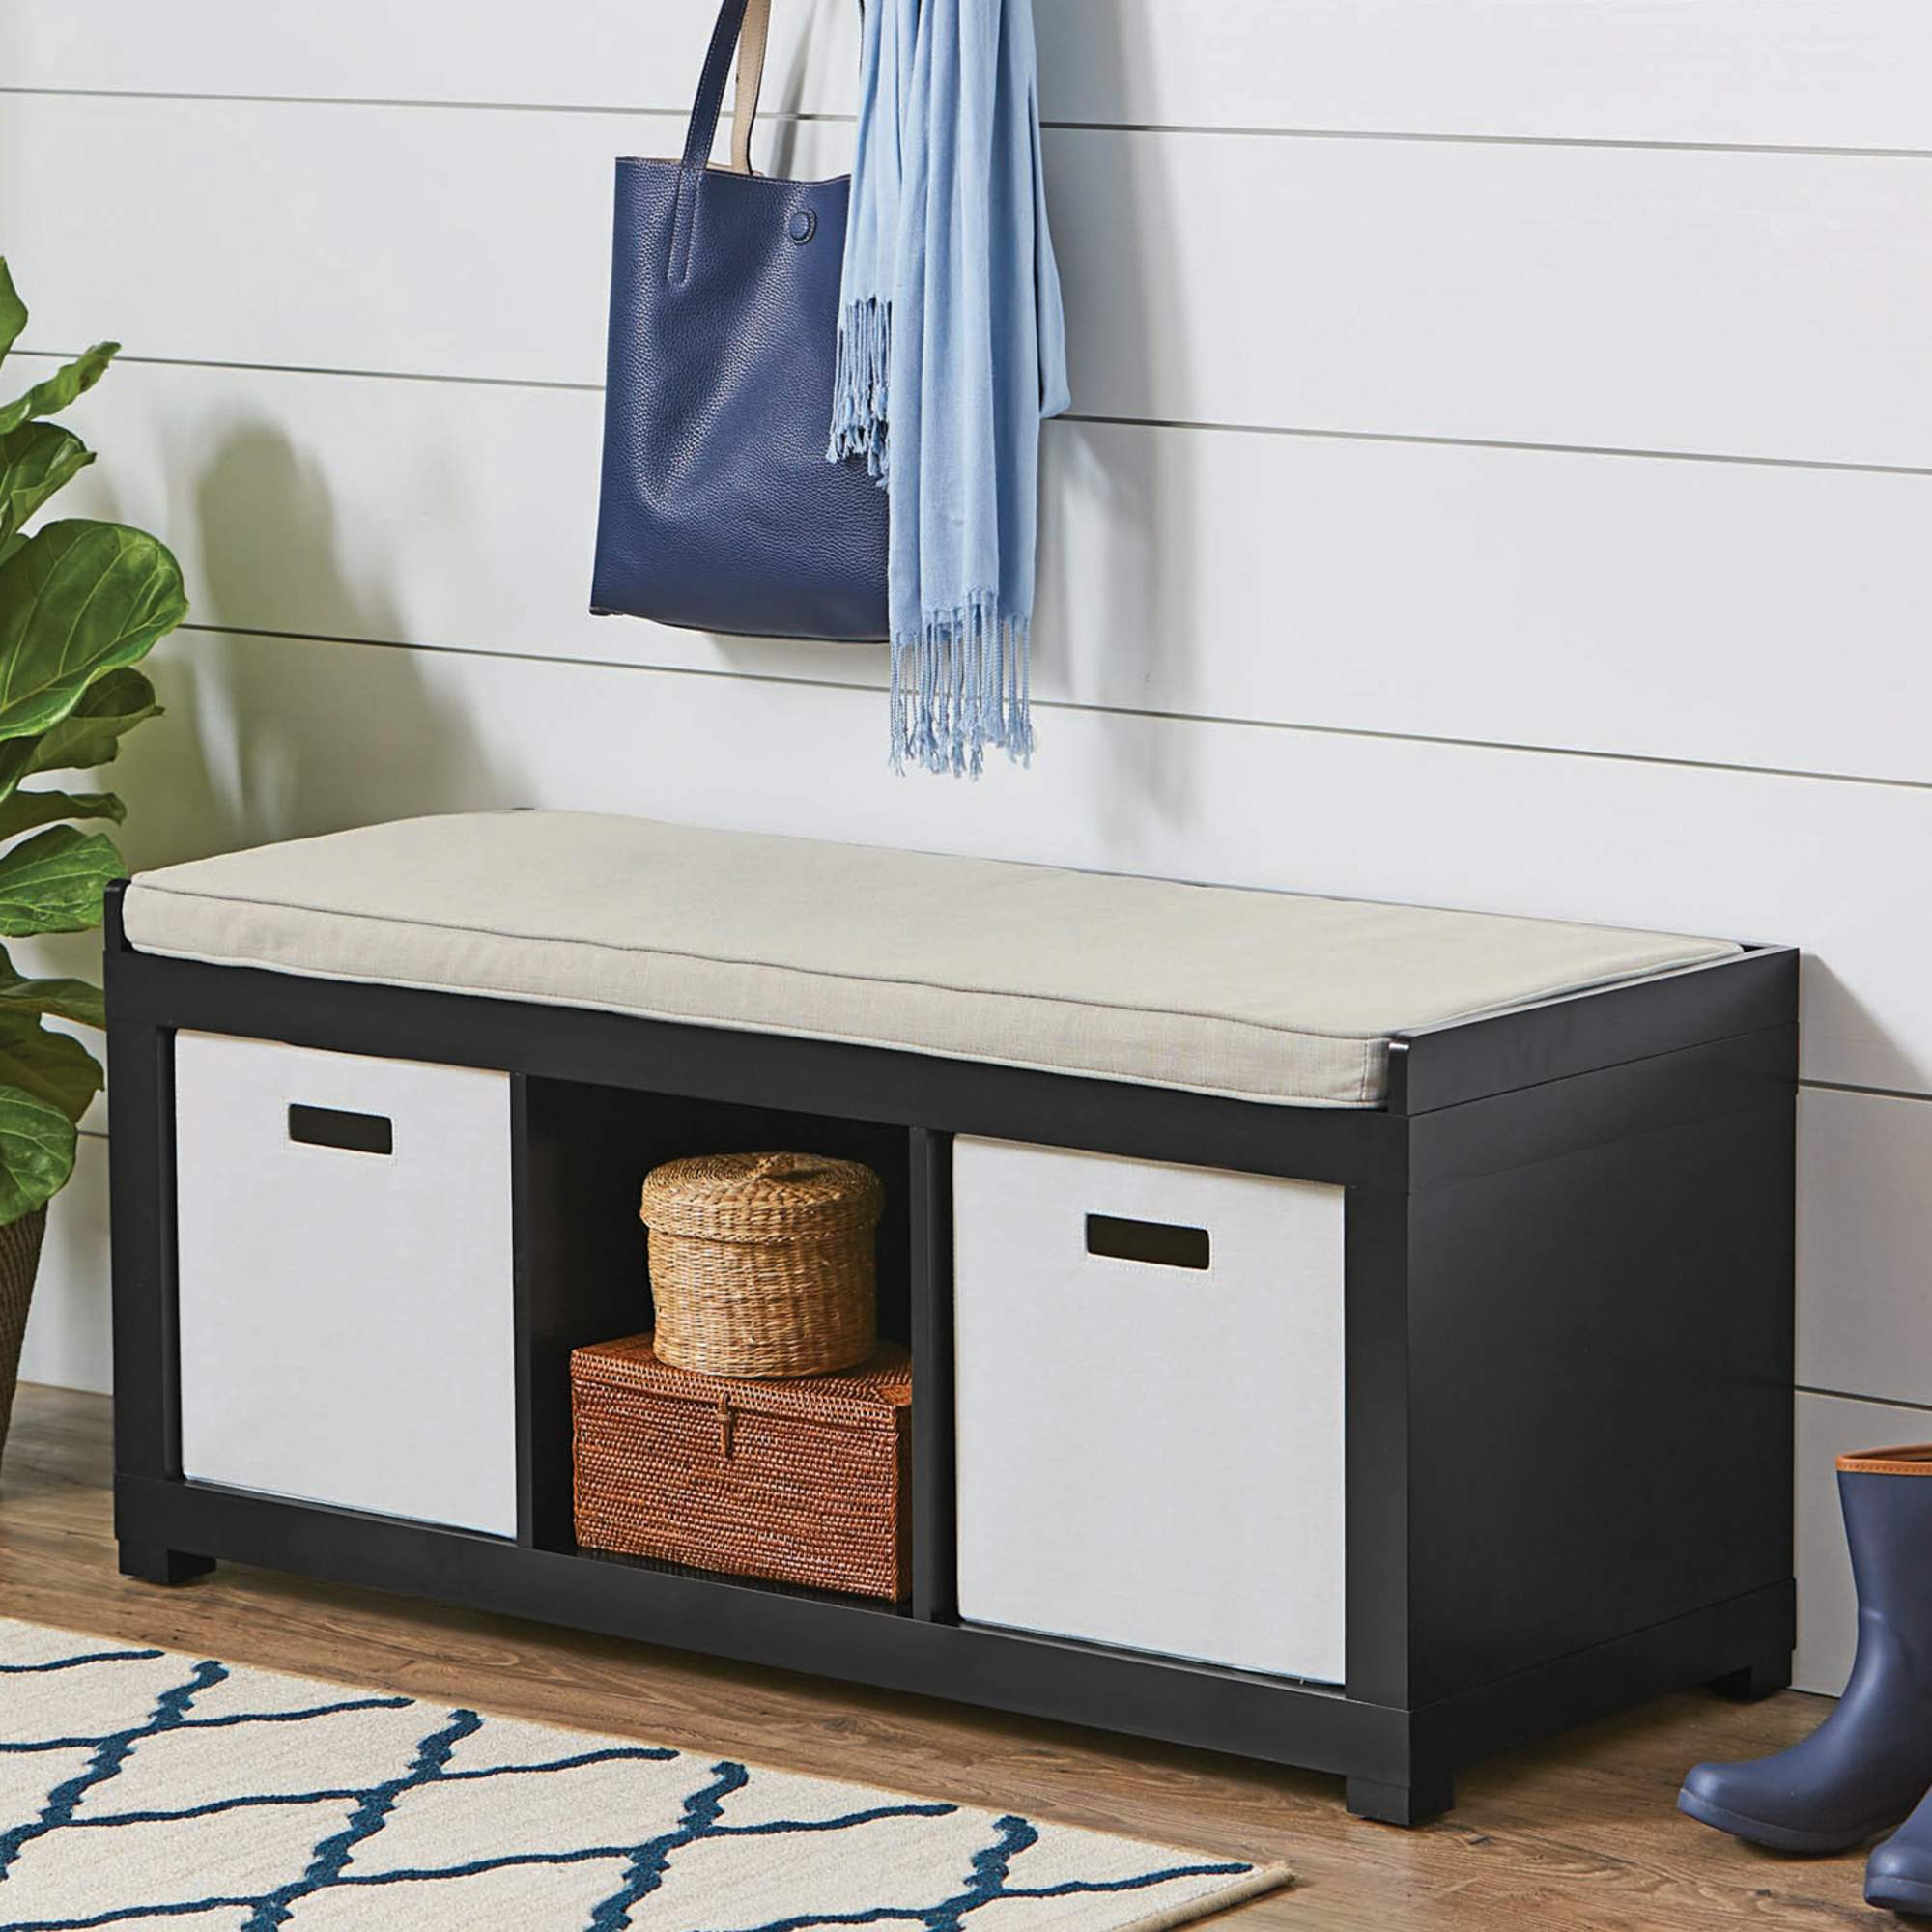 better homes and gardens 4 cube organizer instructions